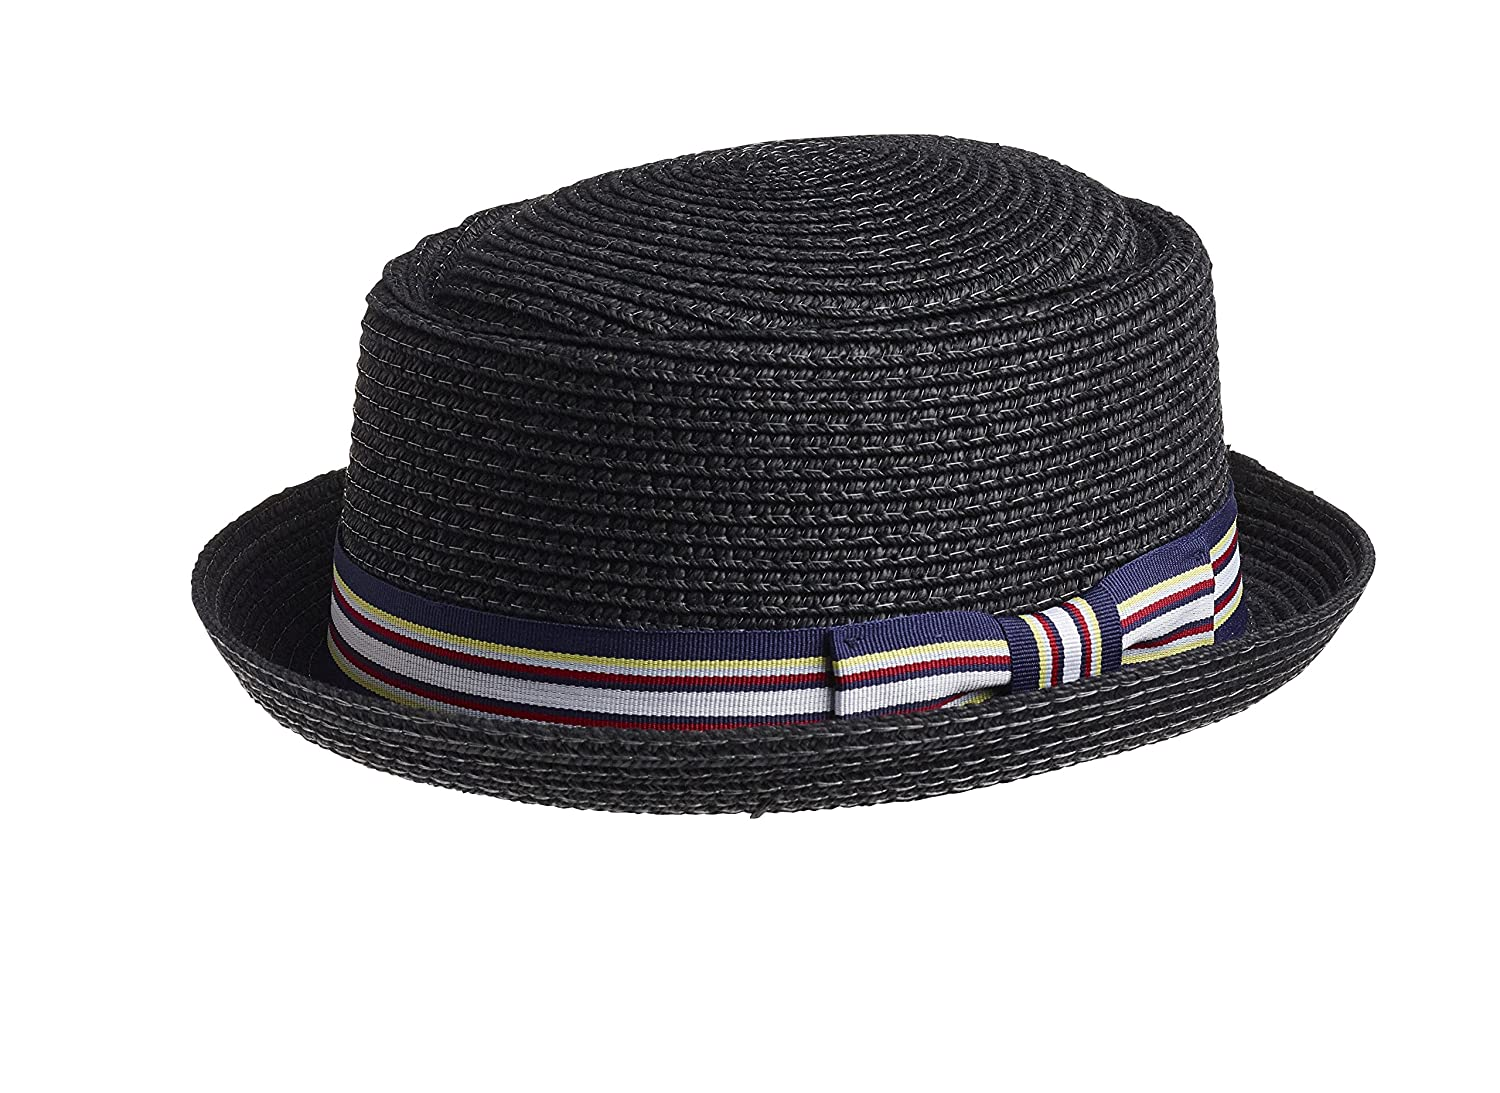 British Retro Straw Boater Hat / Pork Pie hat Black)